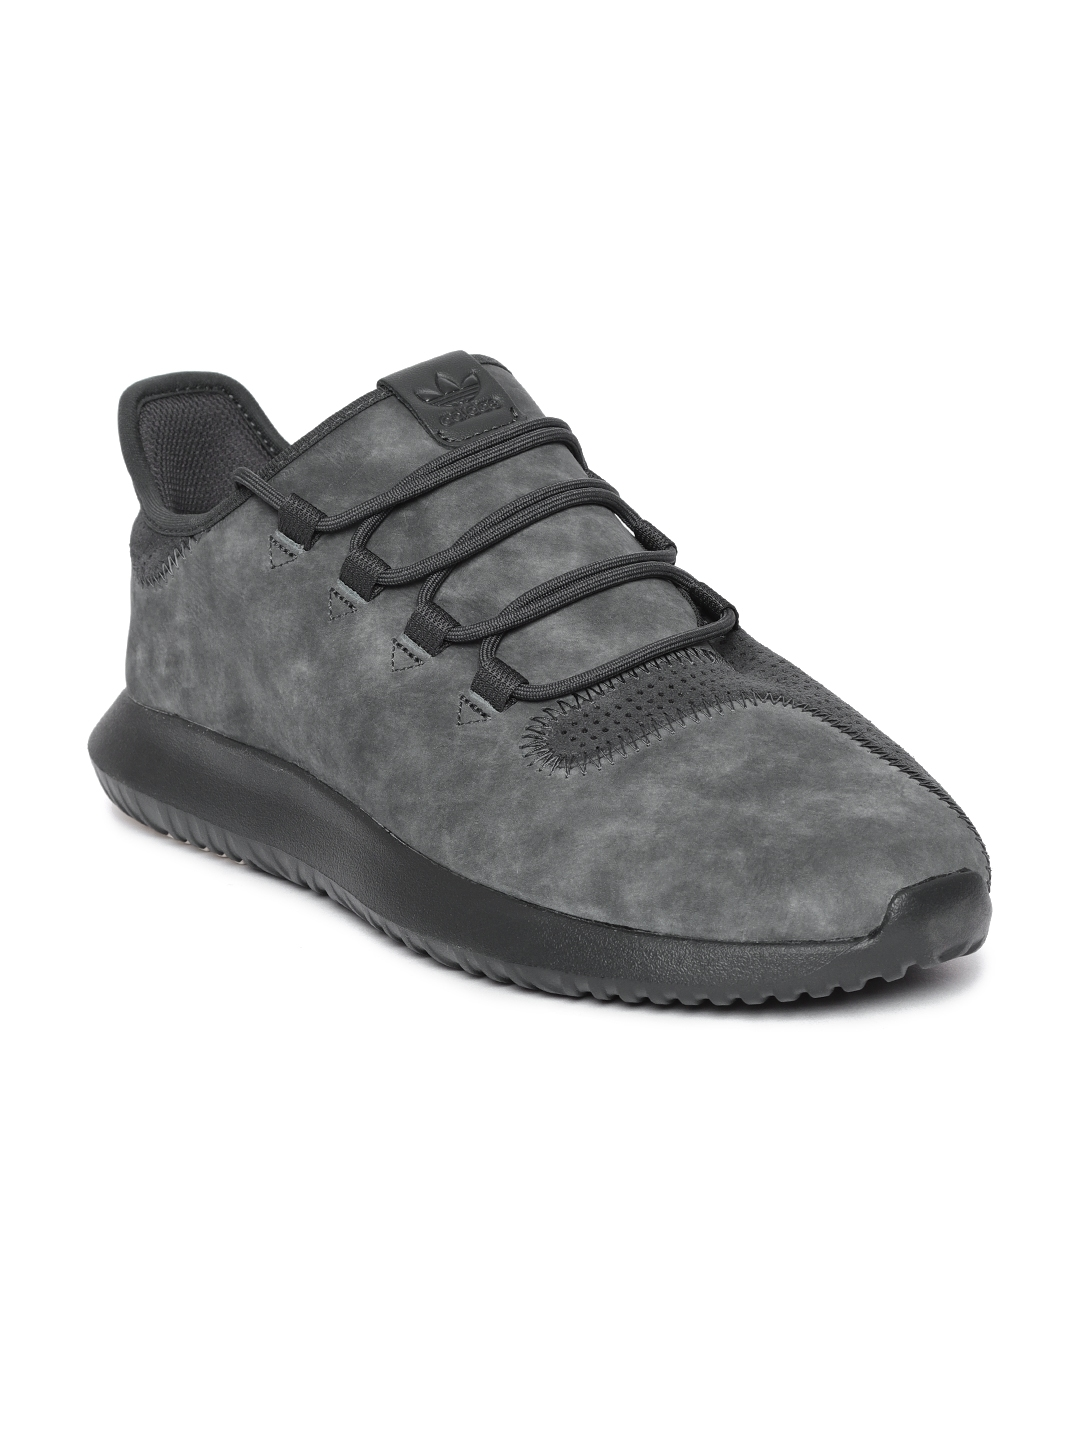 d3e1175d64be4 Buy Adidas Originals Men Charcoal Grey Suede Tubular Shadow Sneakers ...